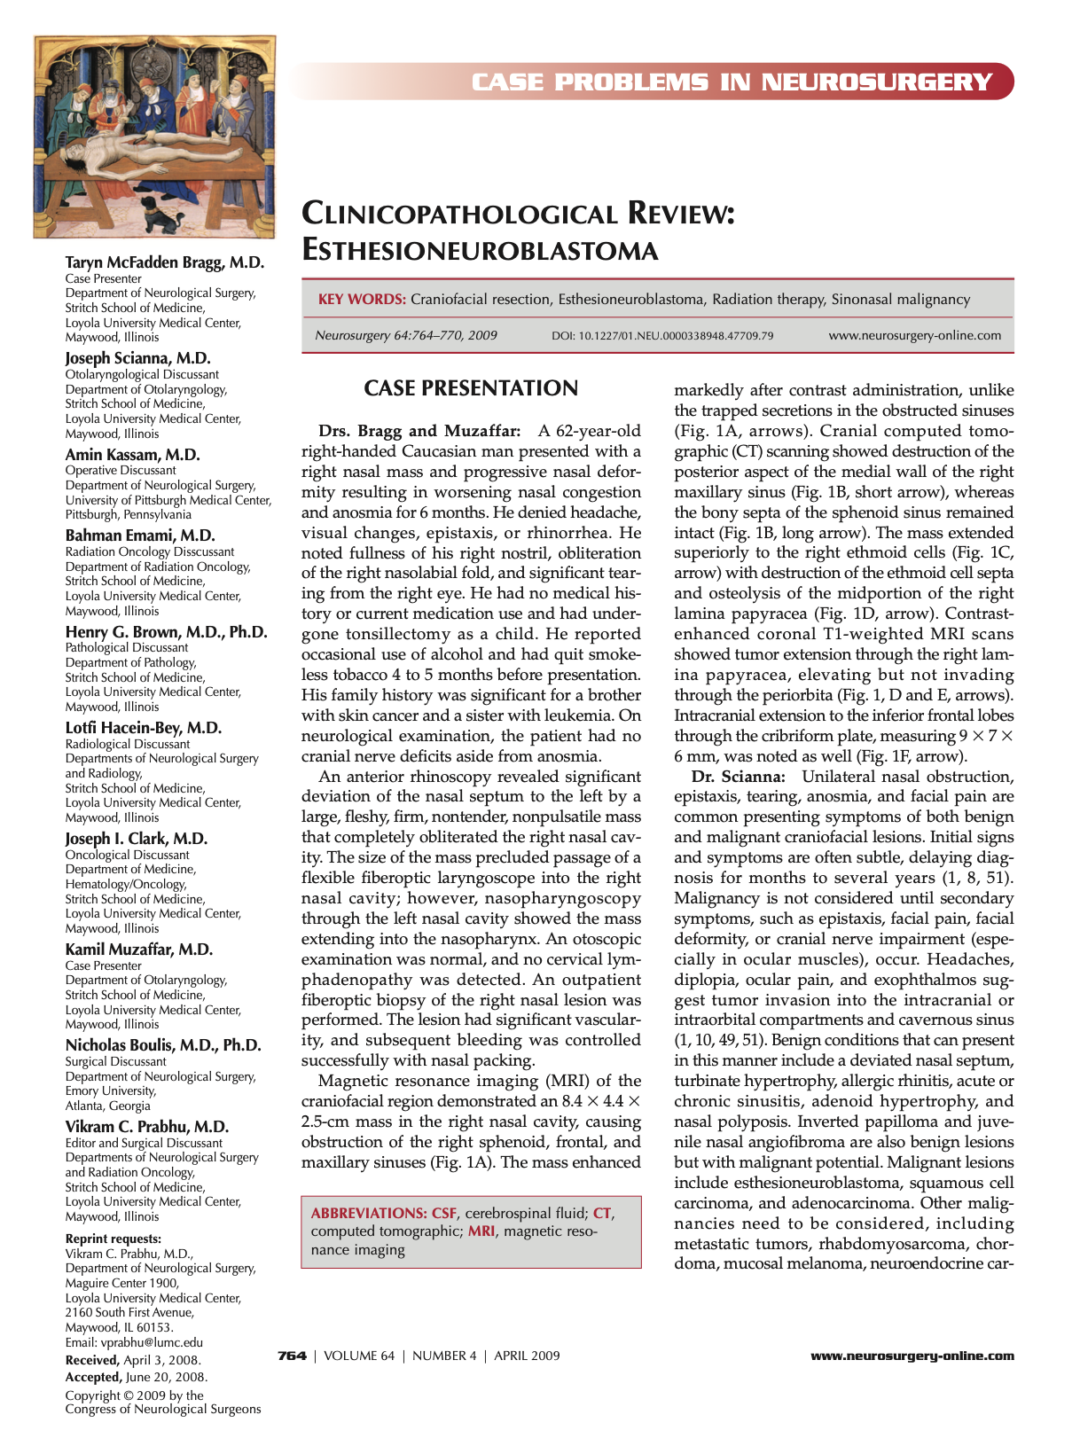 CASE PROBLEMS IN NEUROSURGERY CLINICOPATHOLOGICAL REVIEW: ESTHESIONEUROBLASTOMA